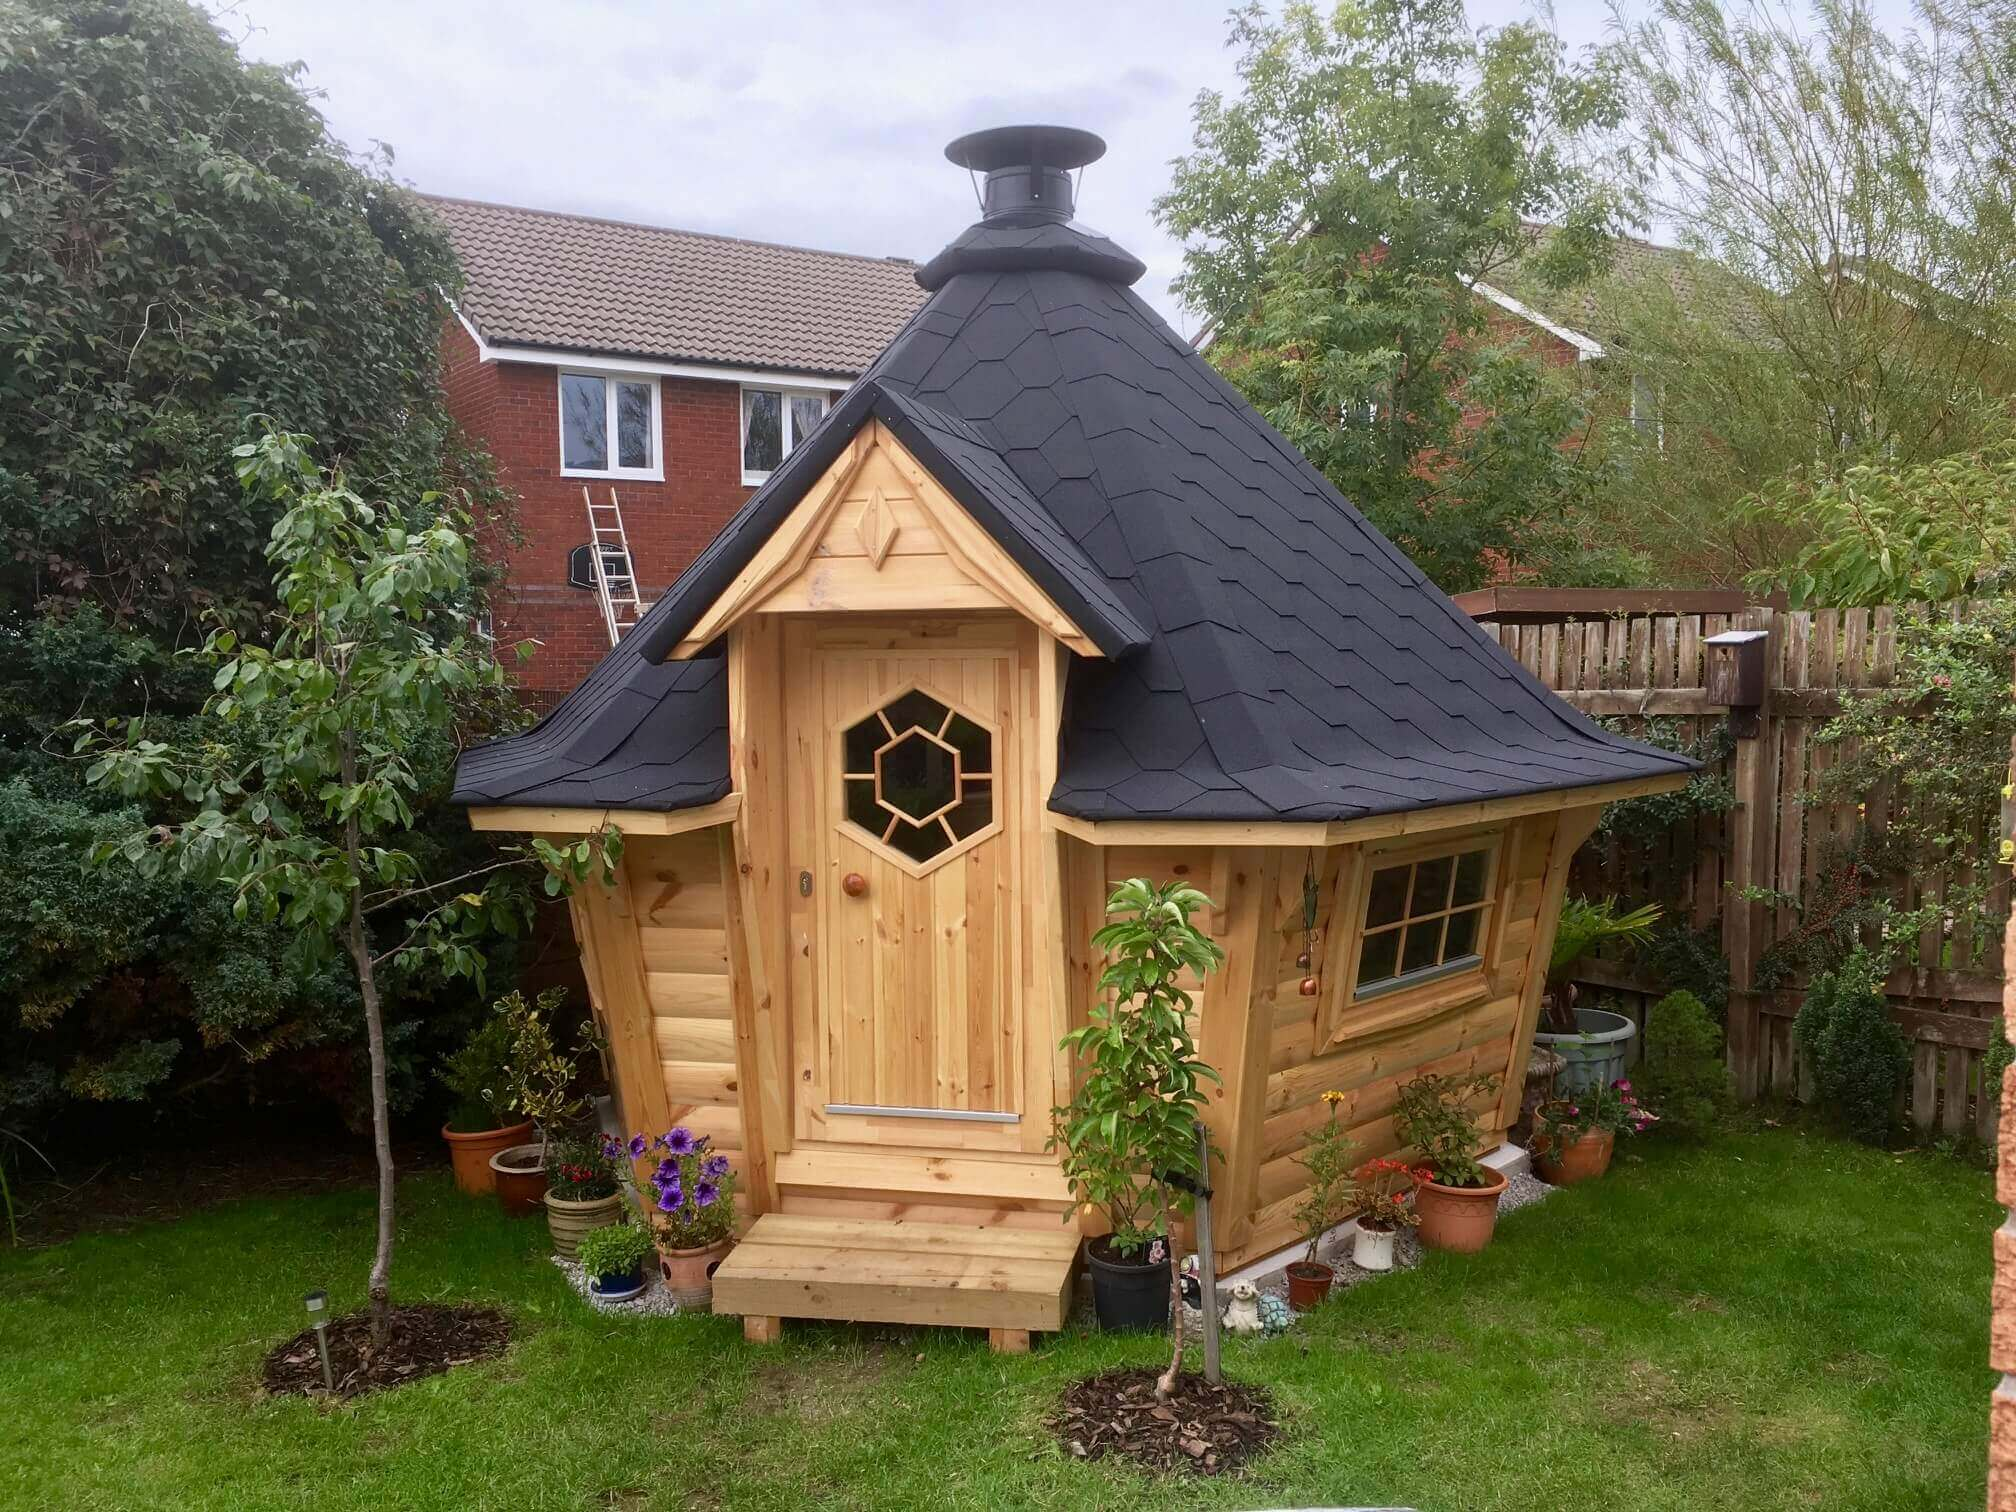 The Small 7m Grill Cabin From Carrbank Garden Centre